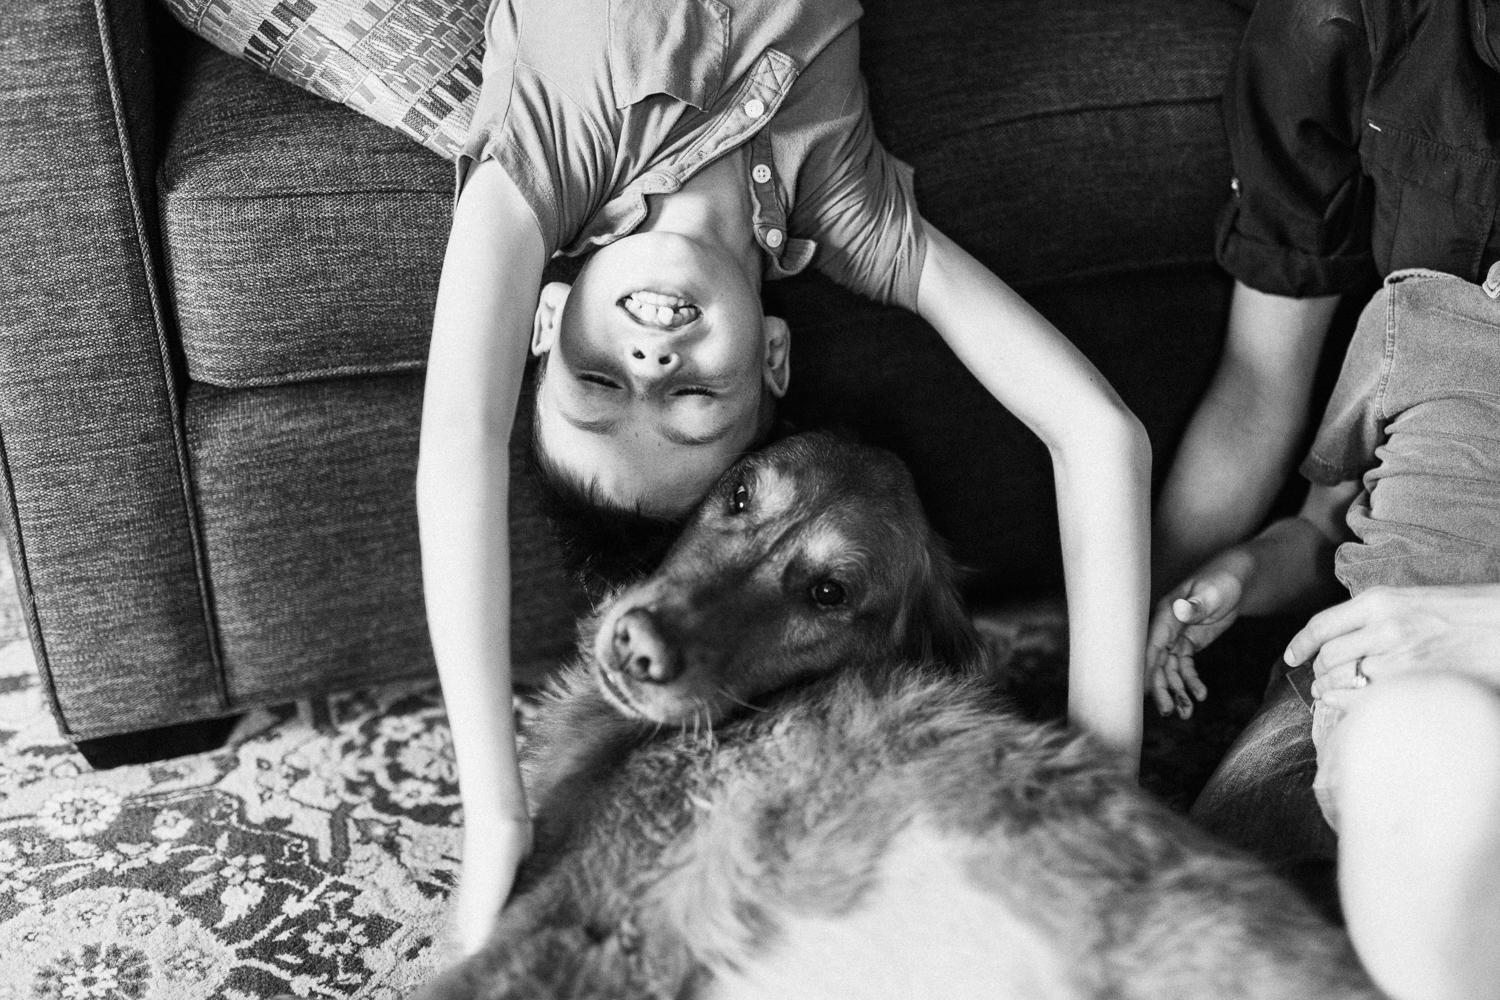 black-and-white-photograph-from-in-home-photo-session-with-dog-suguarhouse-utah